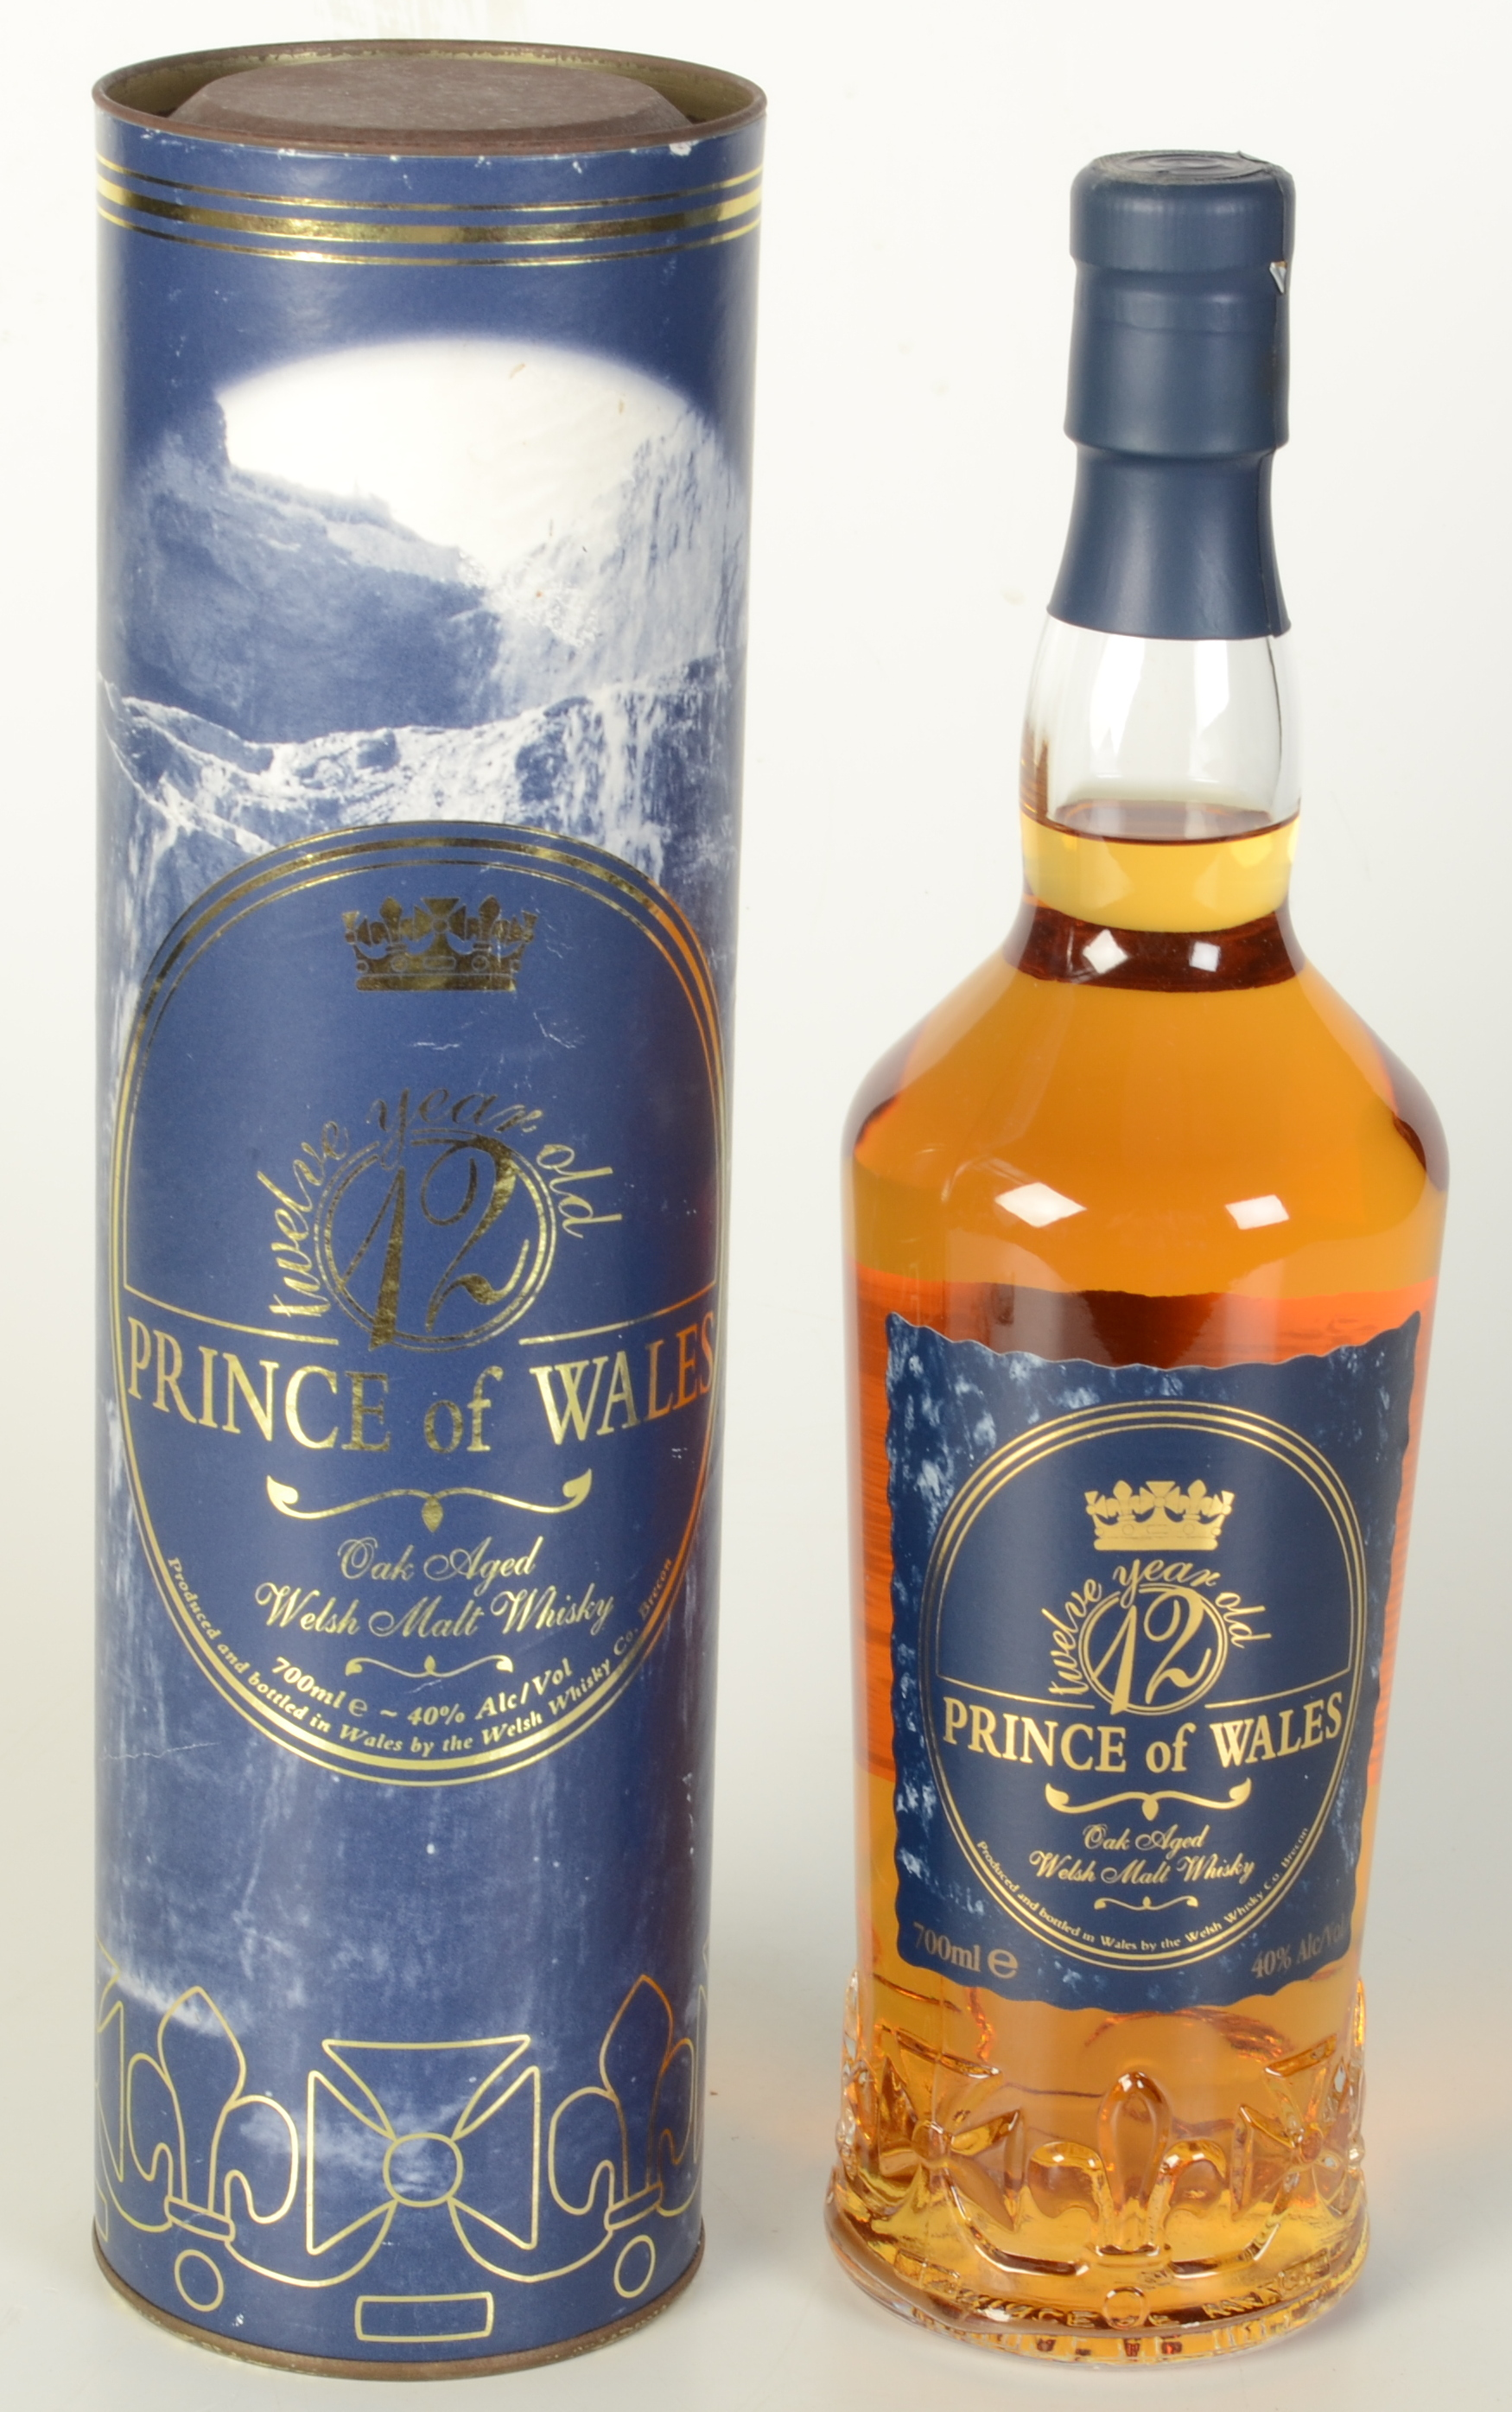 Lot 53 - A Prince of Wales 12 year old, oak aged Welsh malt whiskey,